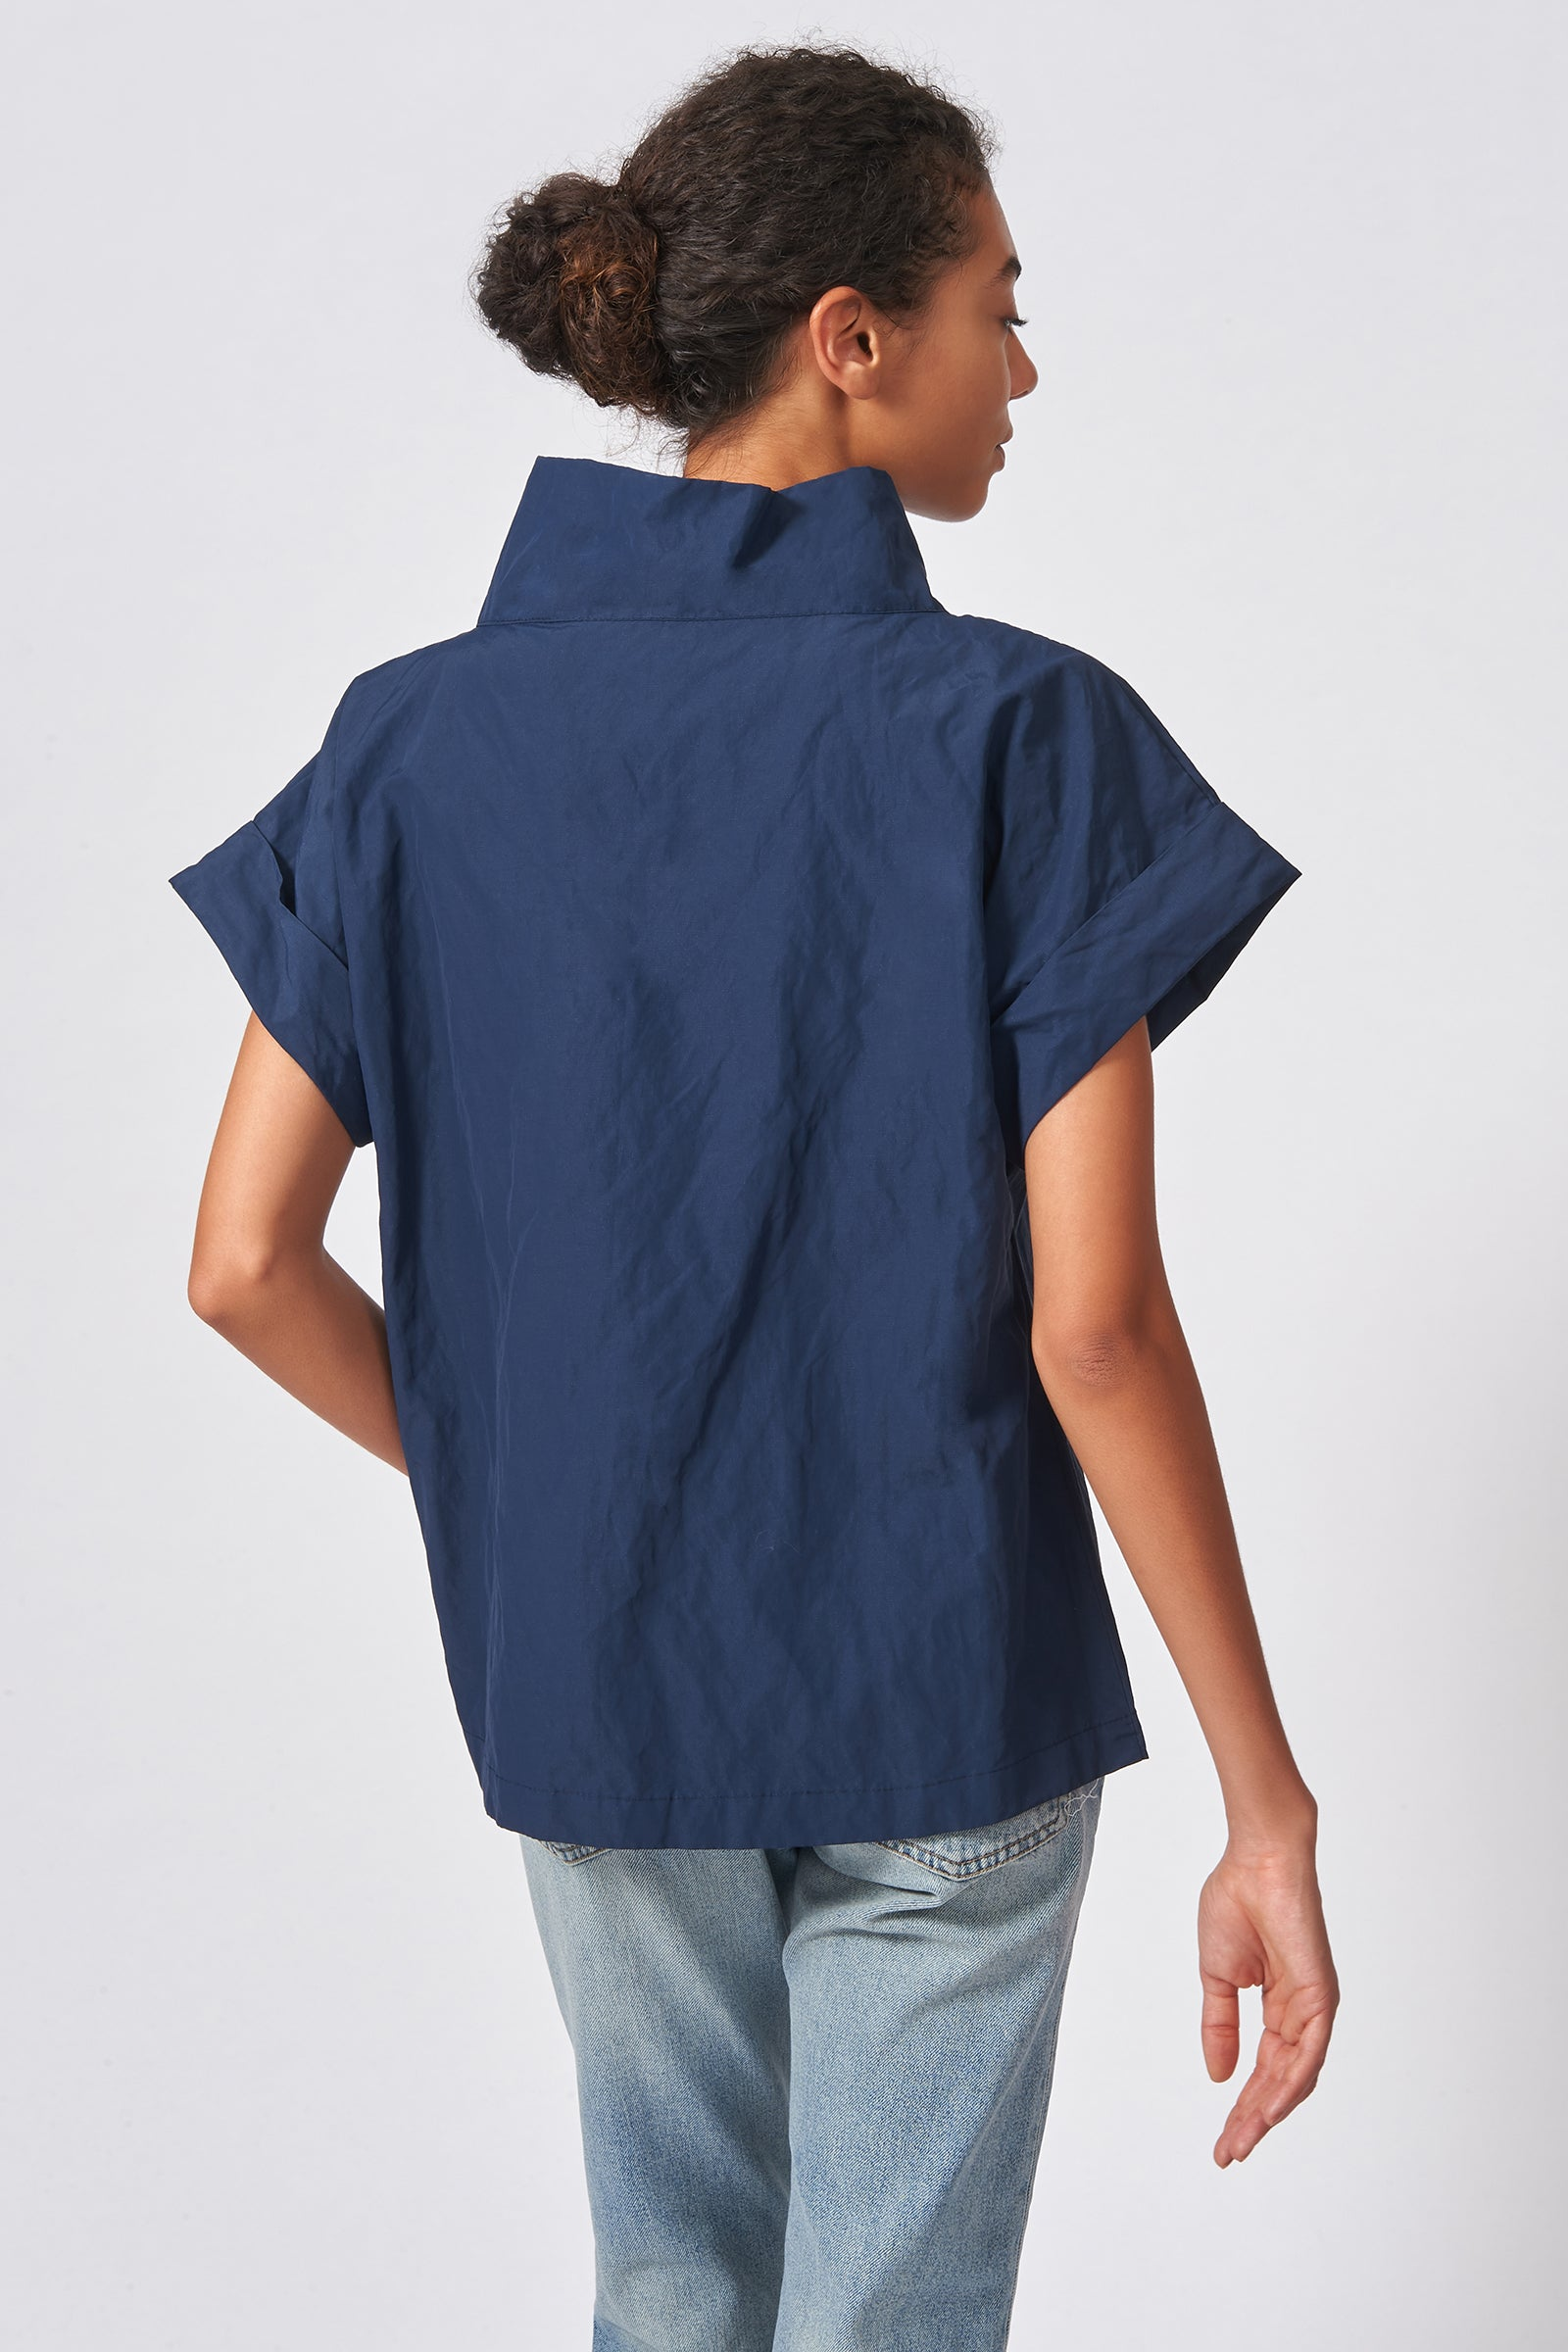 Kal Rieman Cuffed Kimono Tee in Navy Cotton Nylon on Model Front Side View